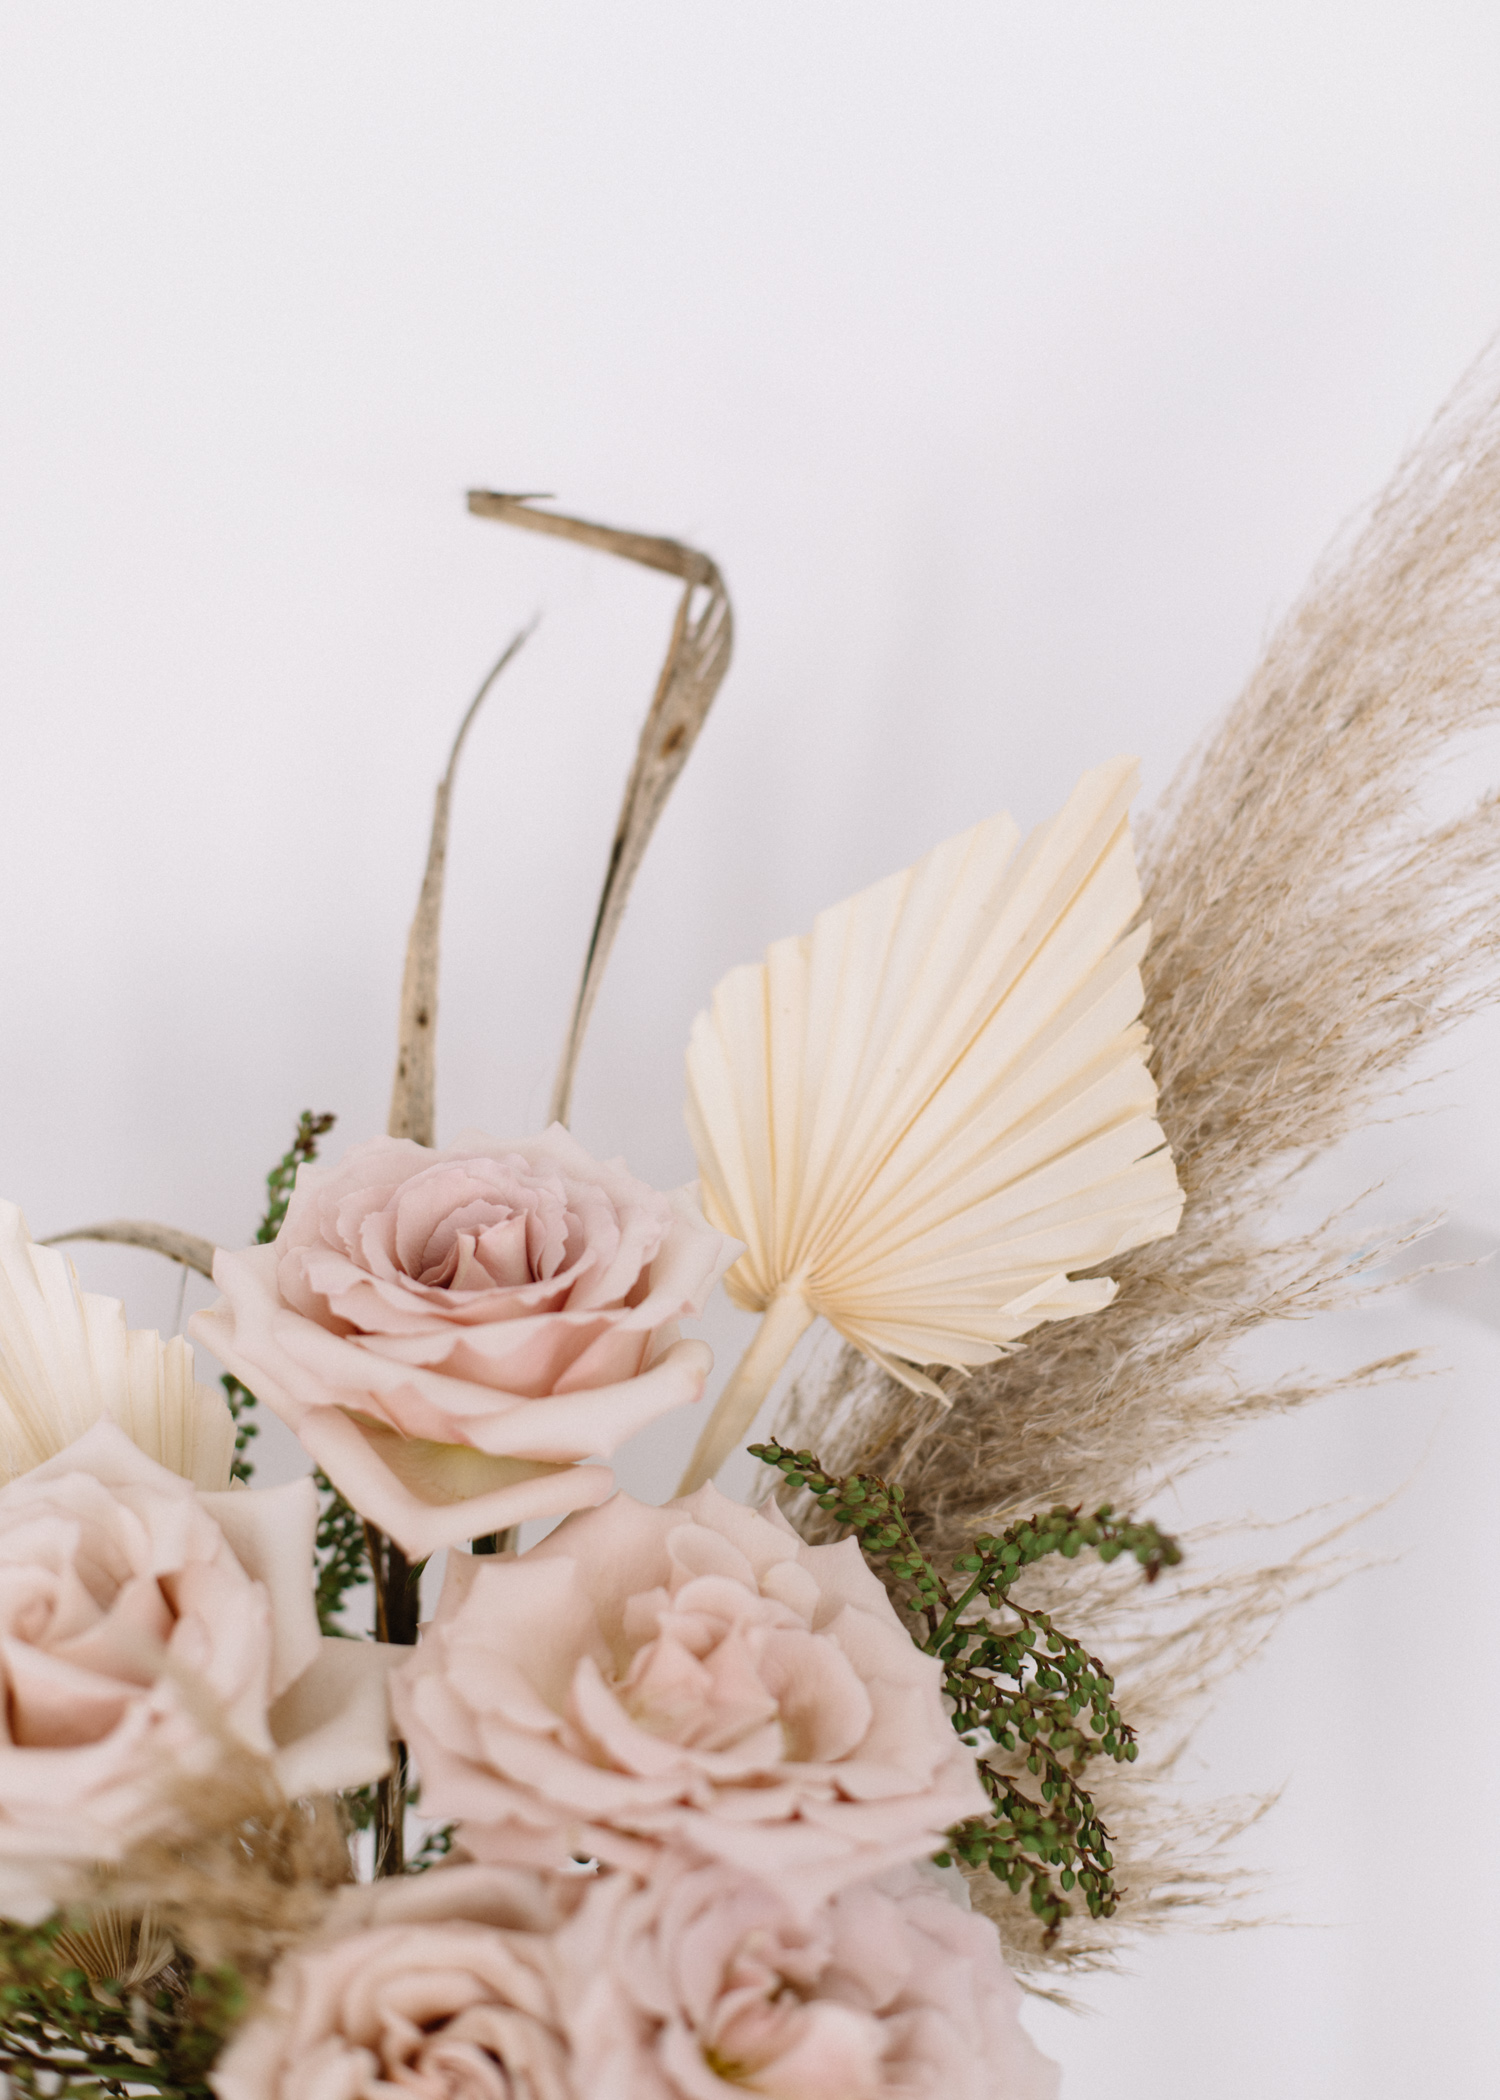 Dried + Real Florals || Summer Flower Arrangement - A Fabulous Fete.jpg